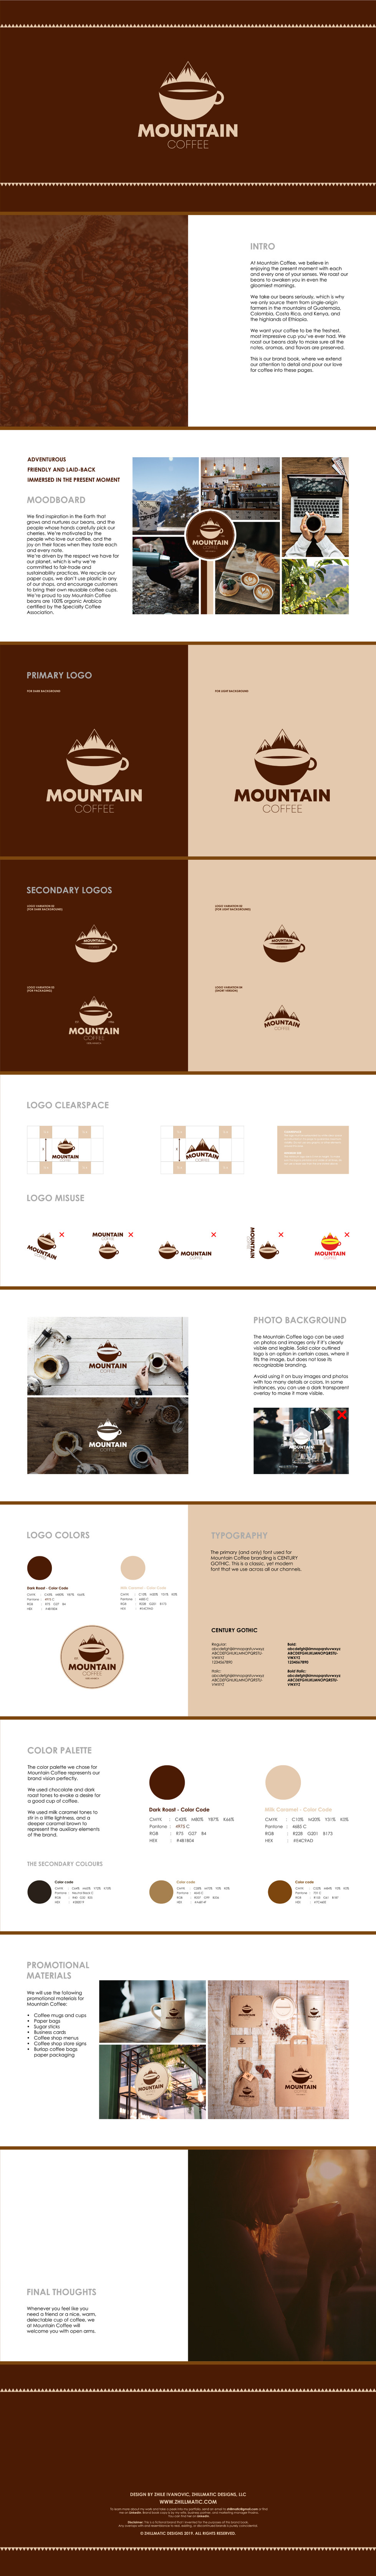 Complete Branding and Logo Design for Mountain Coffee Brand by Zhillmatic